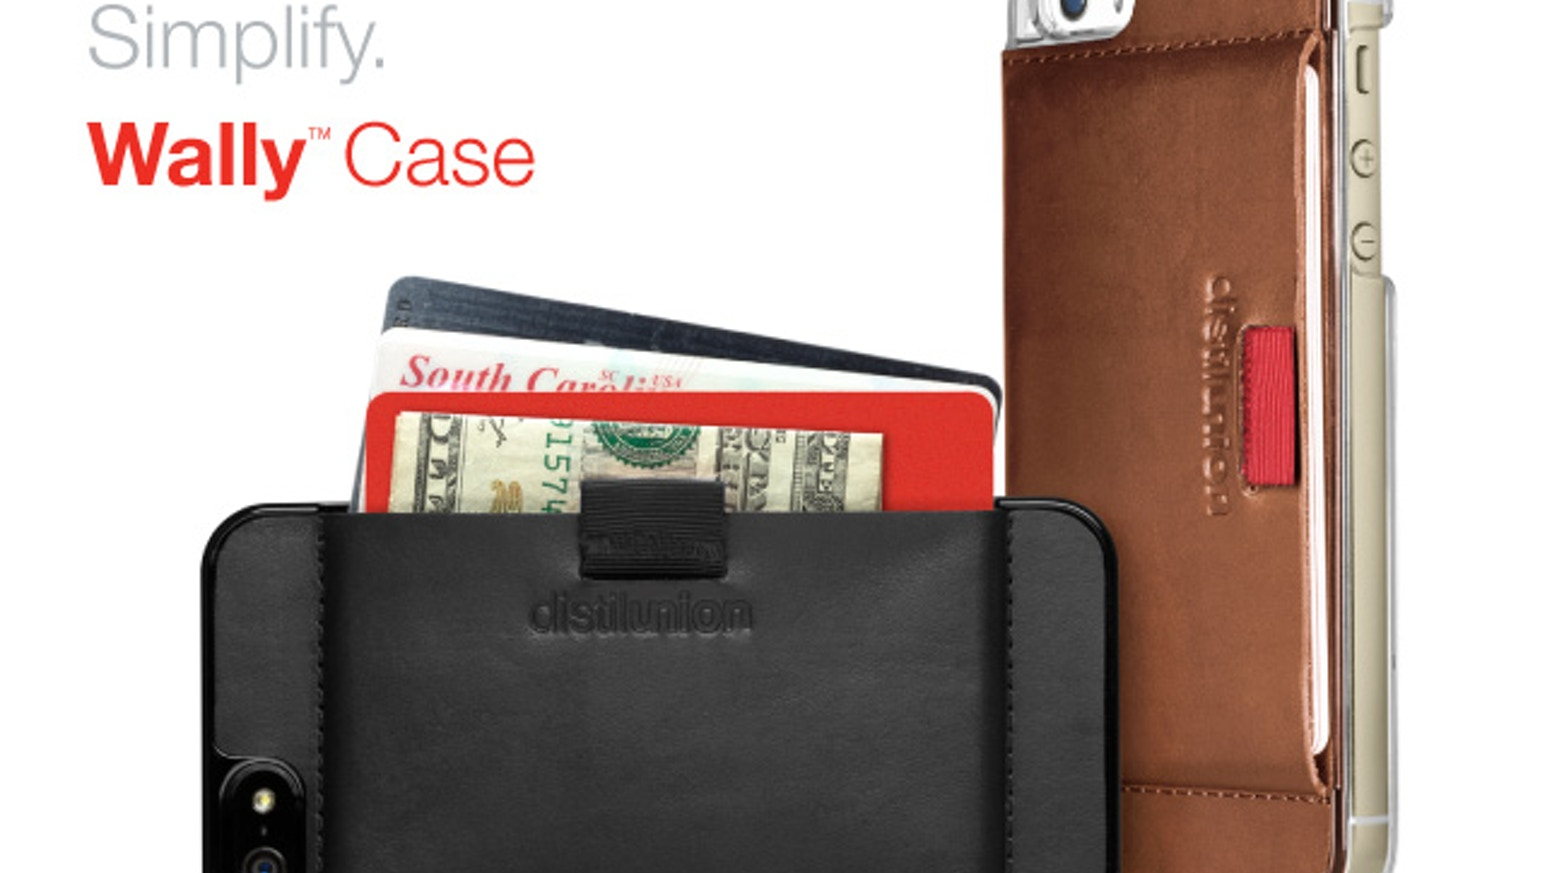 Simplify your grab-n-go with Wally Case: The minimal snap-on wallet case for iPhone that secretly stashes your cards – with pull-tab for easy access.